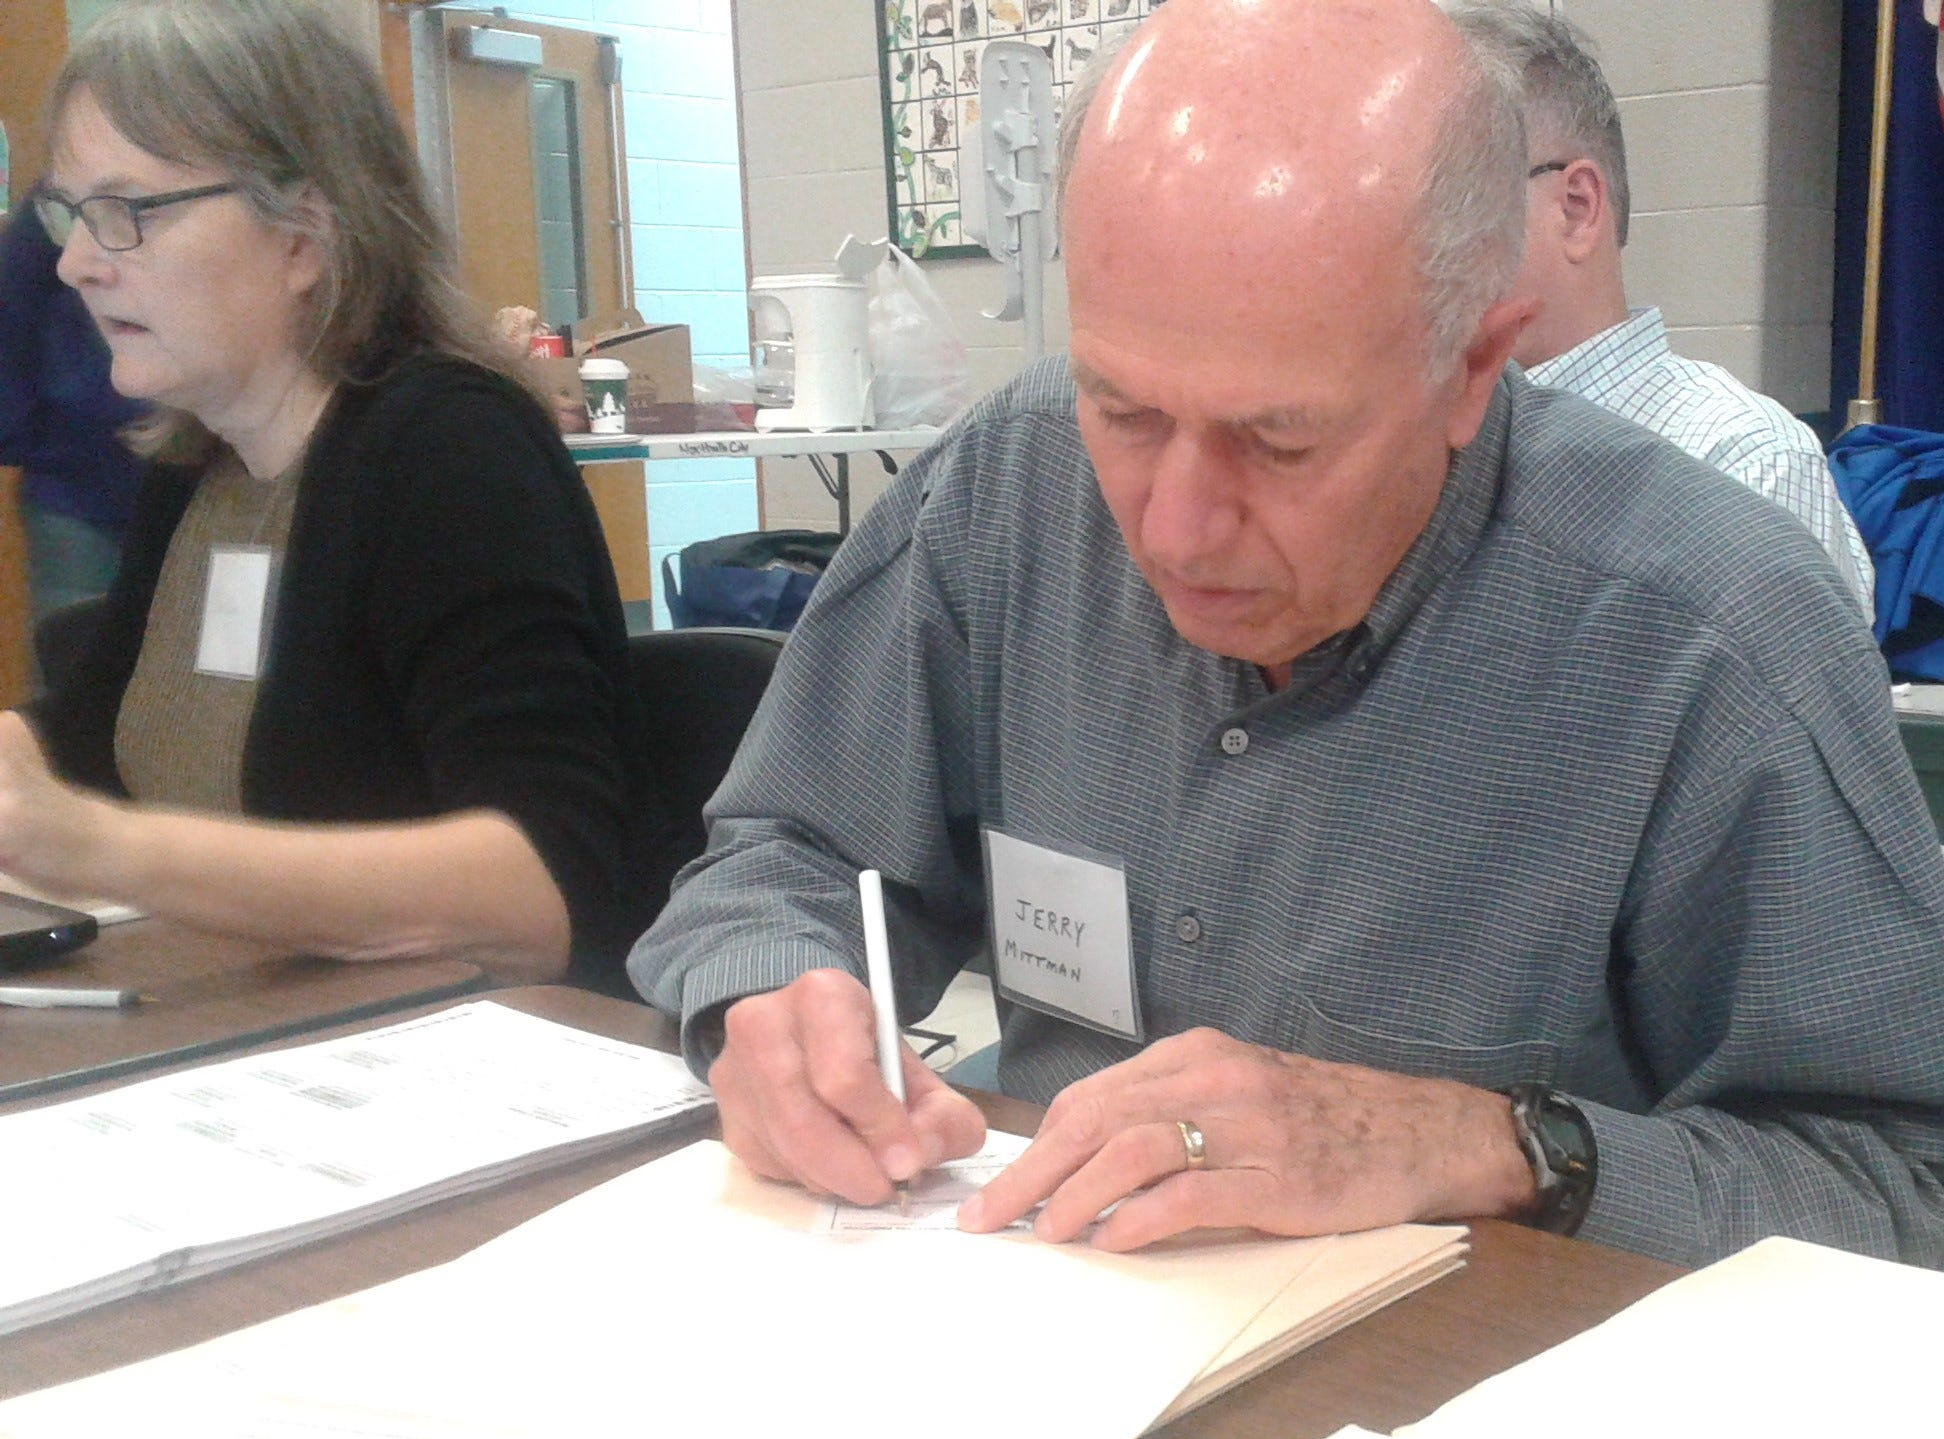 Precinct workers JoEllen Hyatt (left) and Jerry Mittman check in voters at Amerman Elementary School, precinct #2, in Northville.